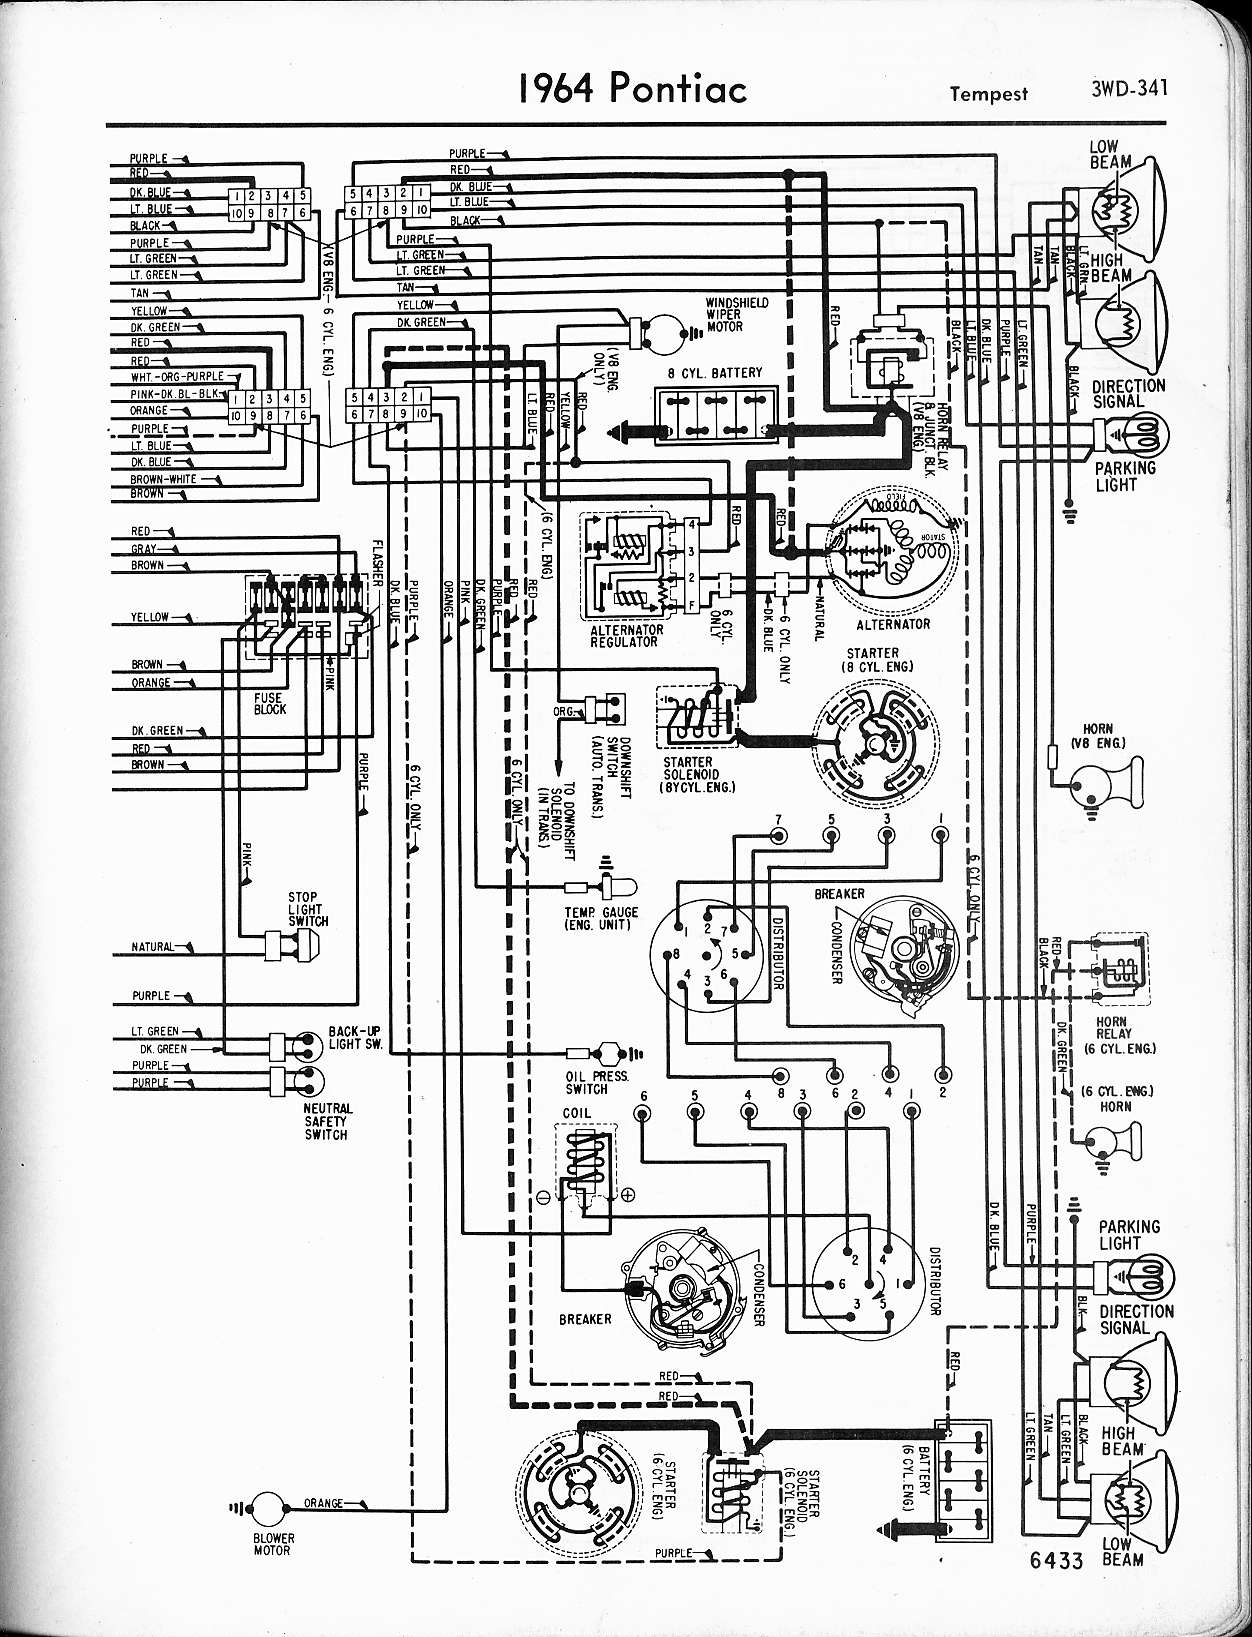 motor diagram viddyup 1970 corvette wiring diagram also 1967 Camaro Wiring Diagram mwire5765 341